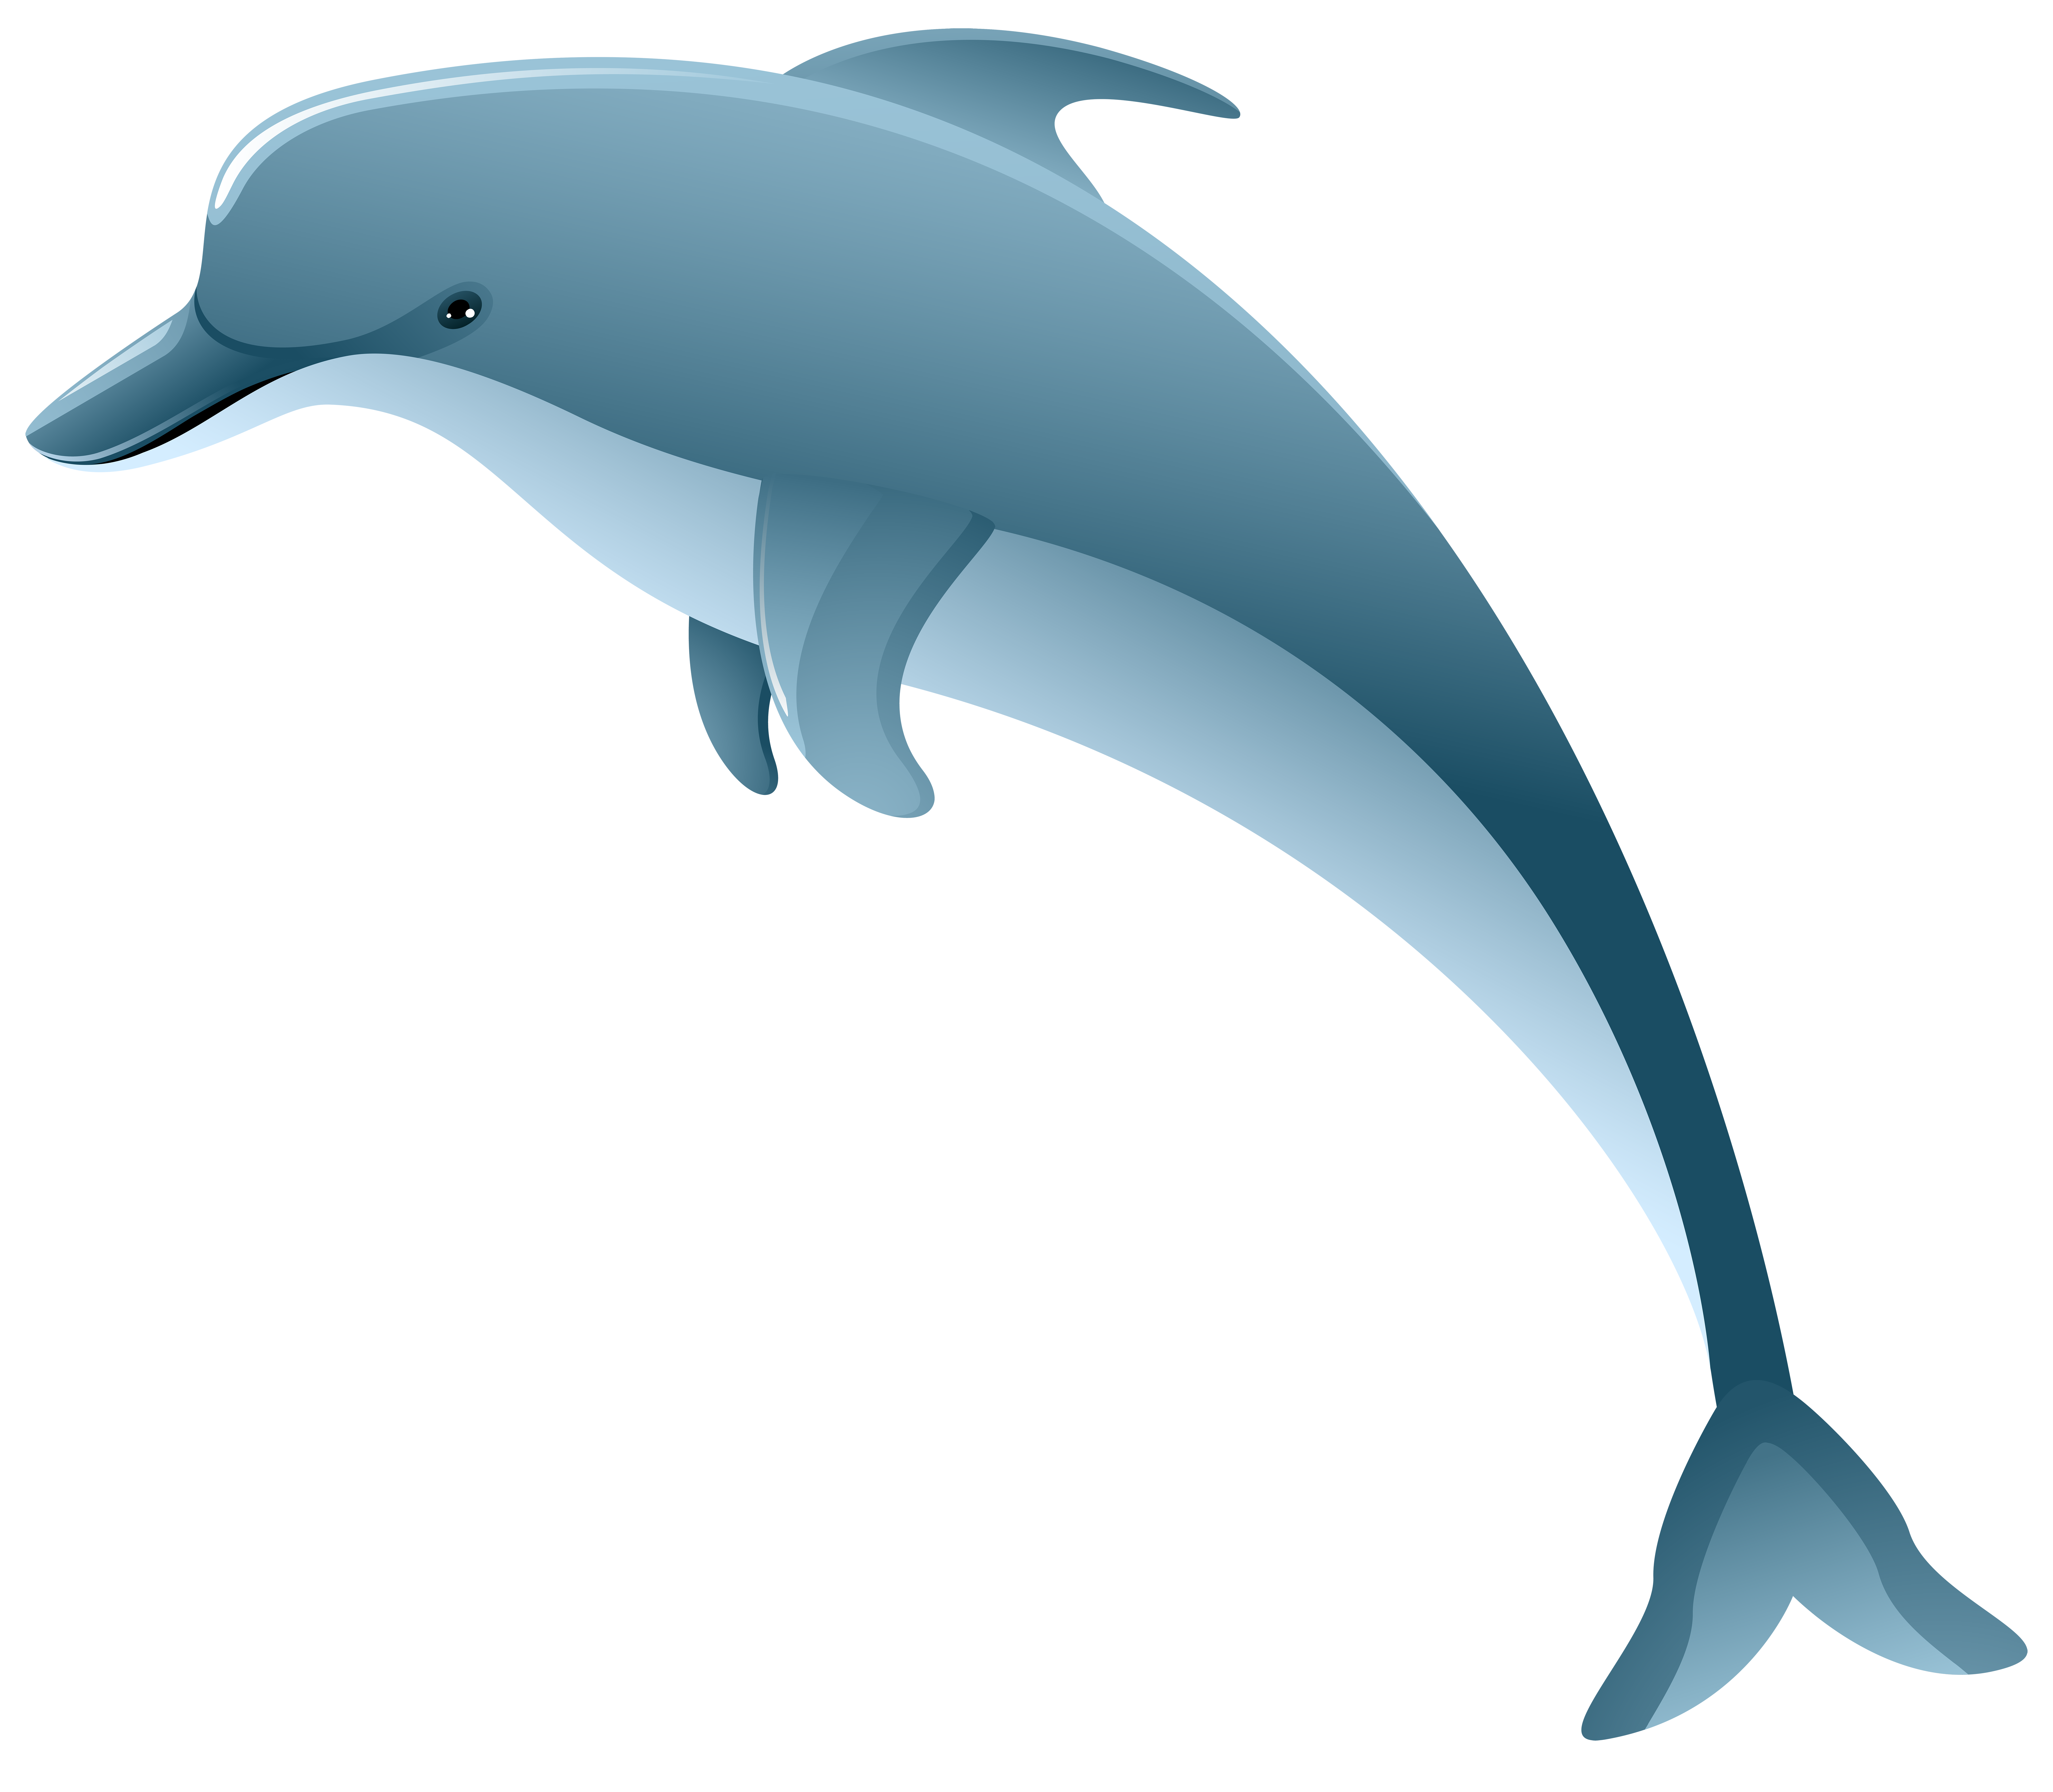 Clipart dolphin. Png clip art image